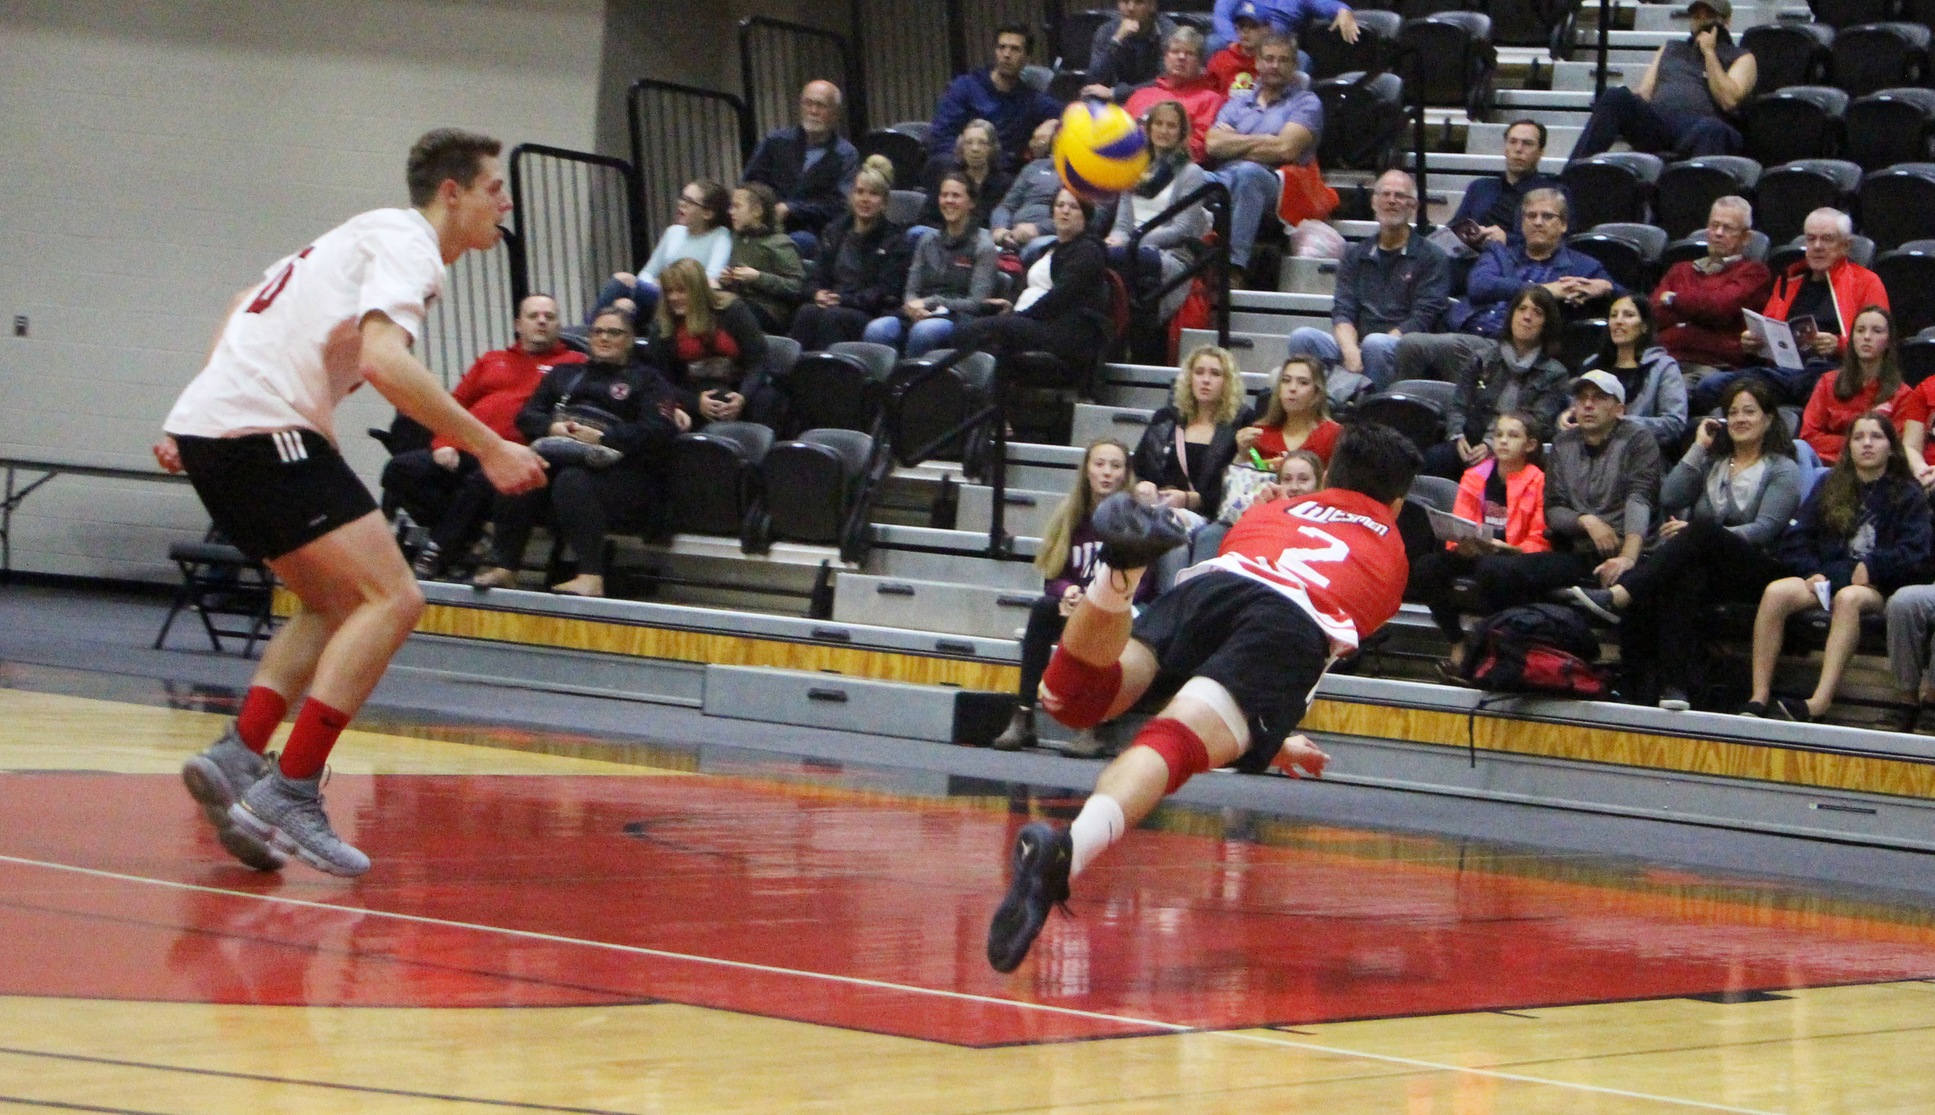 Darian Picklyk lays out to chase down a loose ball during the Winnipeg Wesmen win over the UNB Reds Wednesday, Oct. 10, 2018 in Fredericton, N.B. (UNB photo)